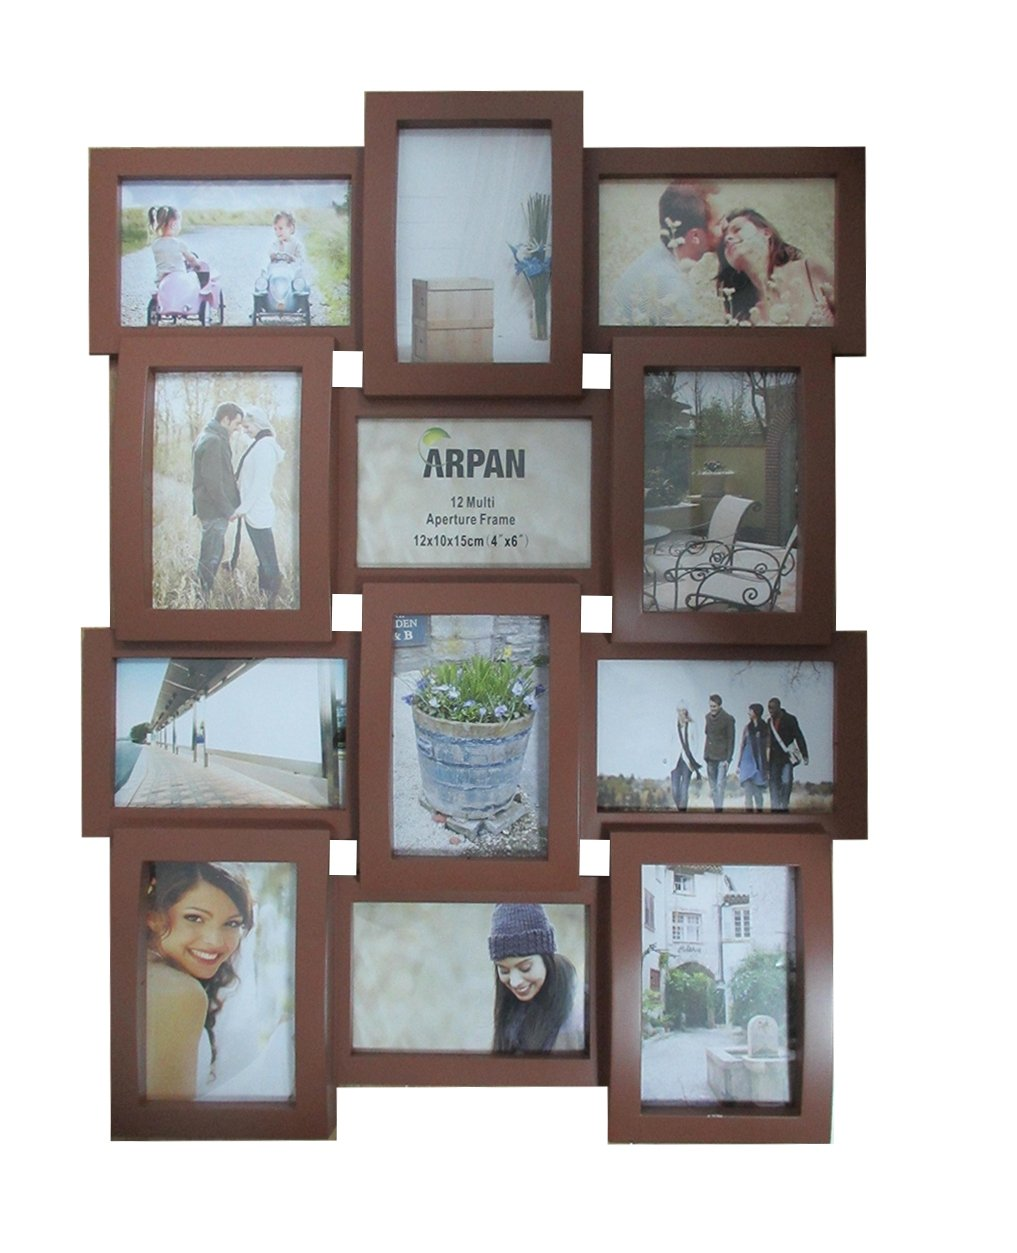 Arpan Multi Apperture Picture/Photo frame, Holds 12 x 6''X4'' Photos - Ideal Gift (BLACK) CL-1014-BLACK